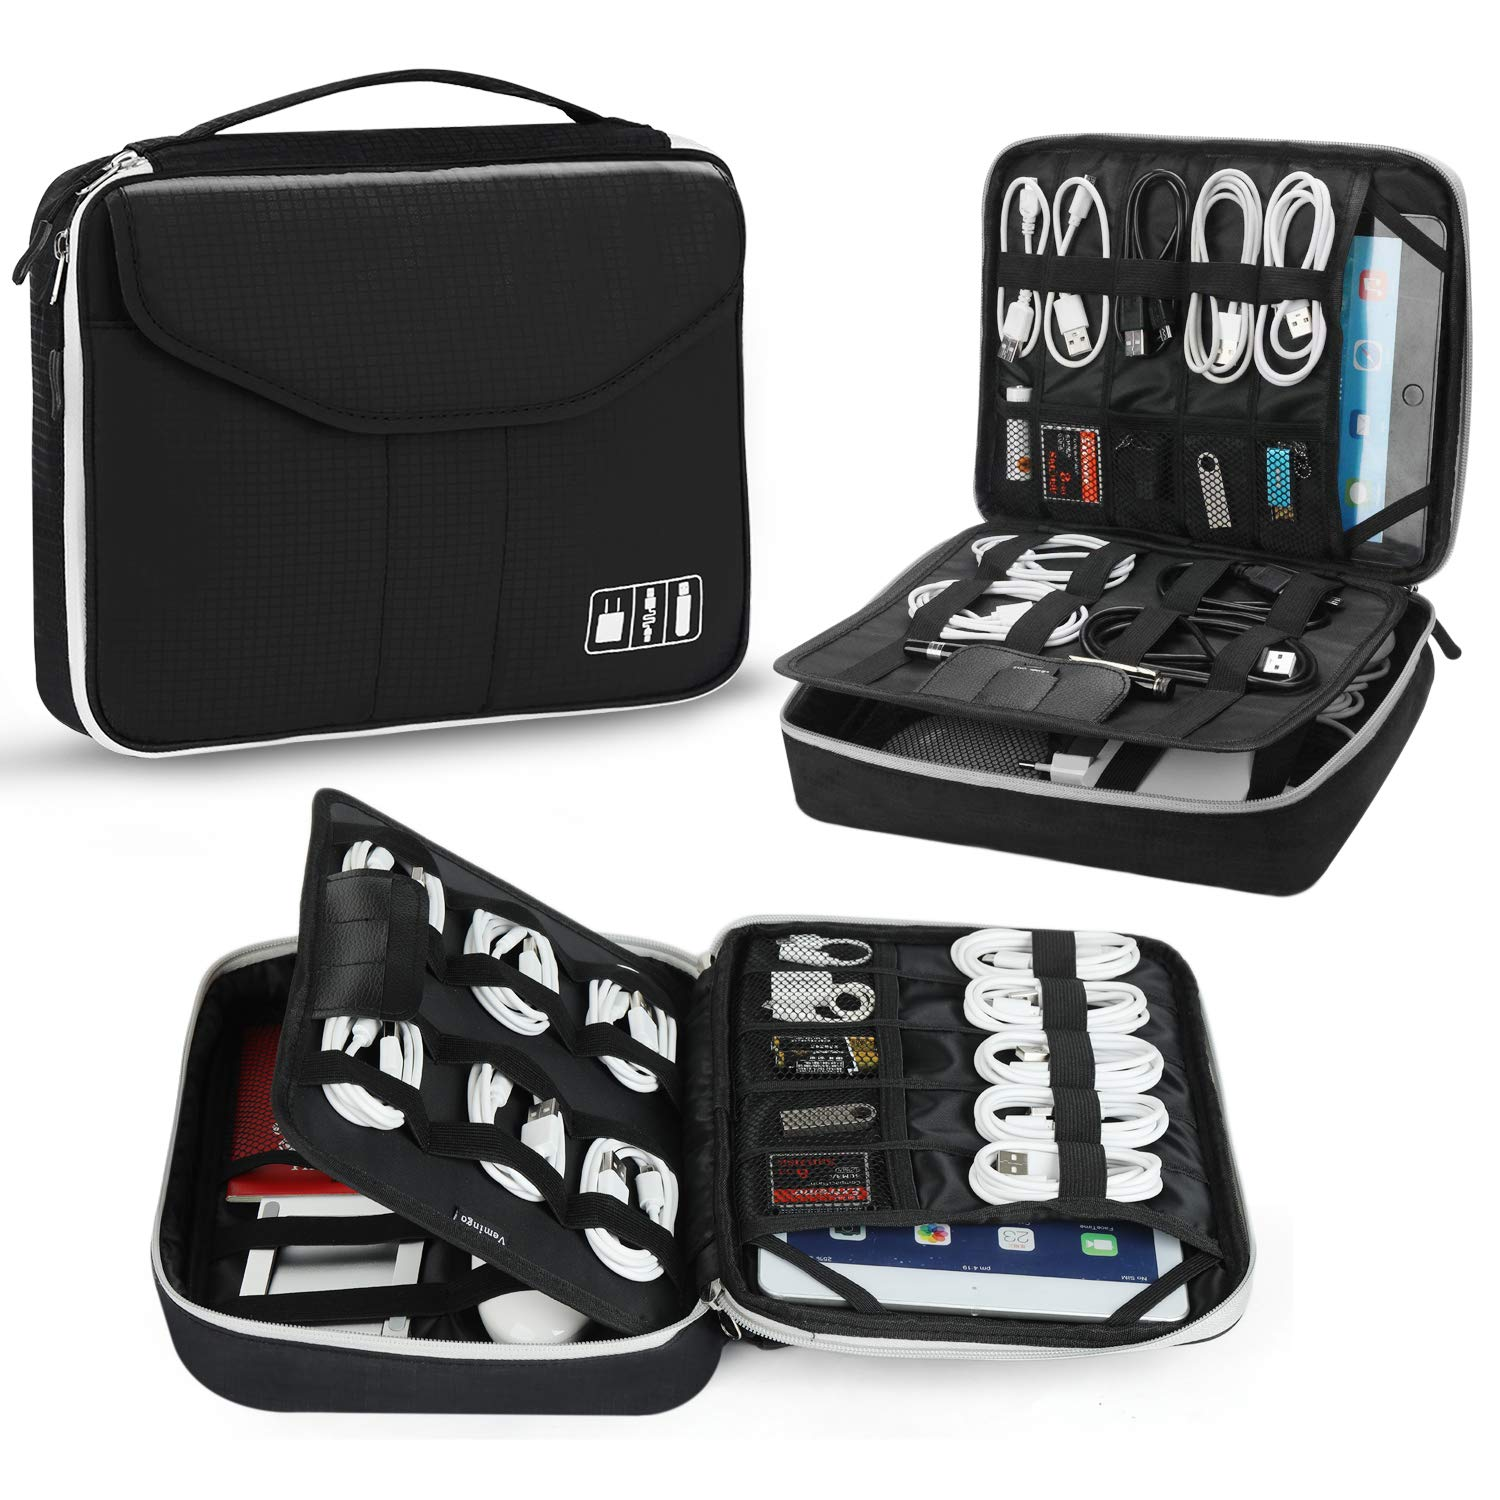 68cb3ac6e356 Best Rated in Electronic Organizers & Helpful Customer Reviews ...